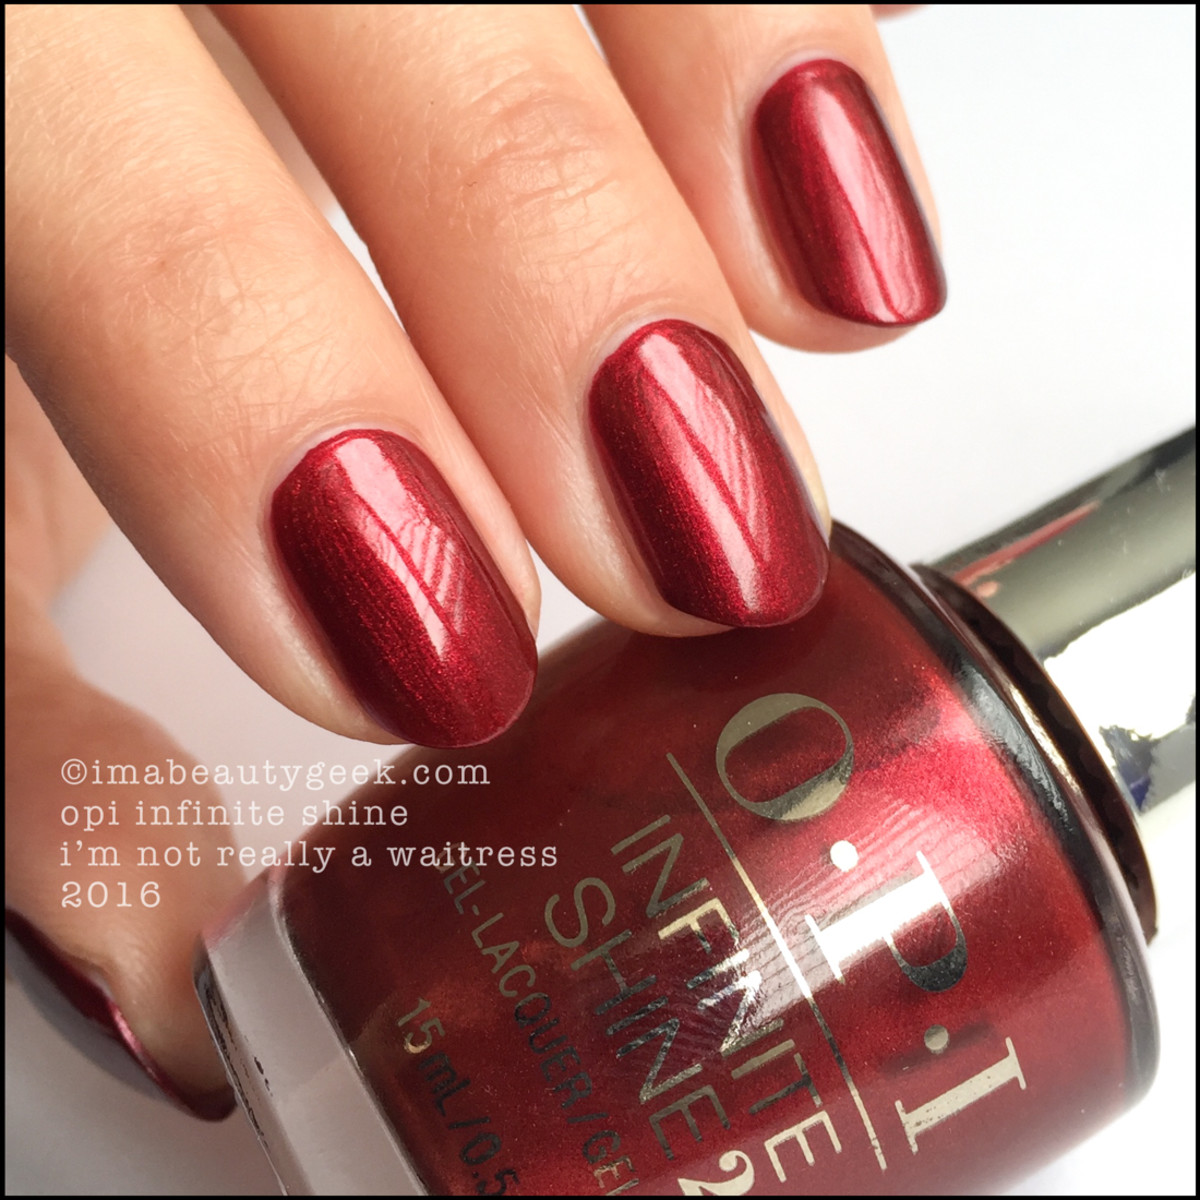 OPI Infinite Shine Im Not Really a Waitress_OPI Infinite Shine Iconic Collection 2016